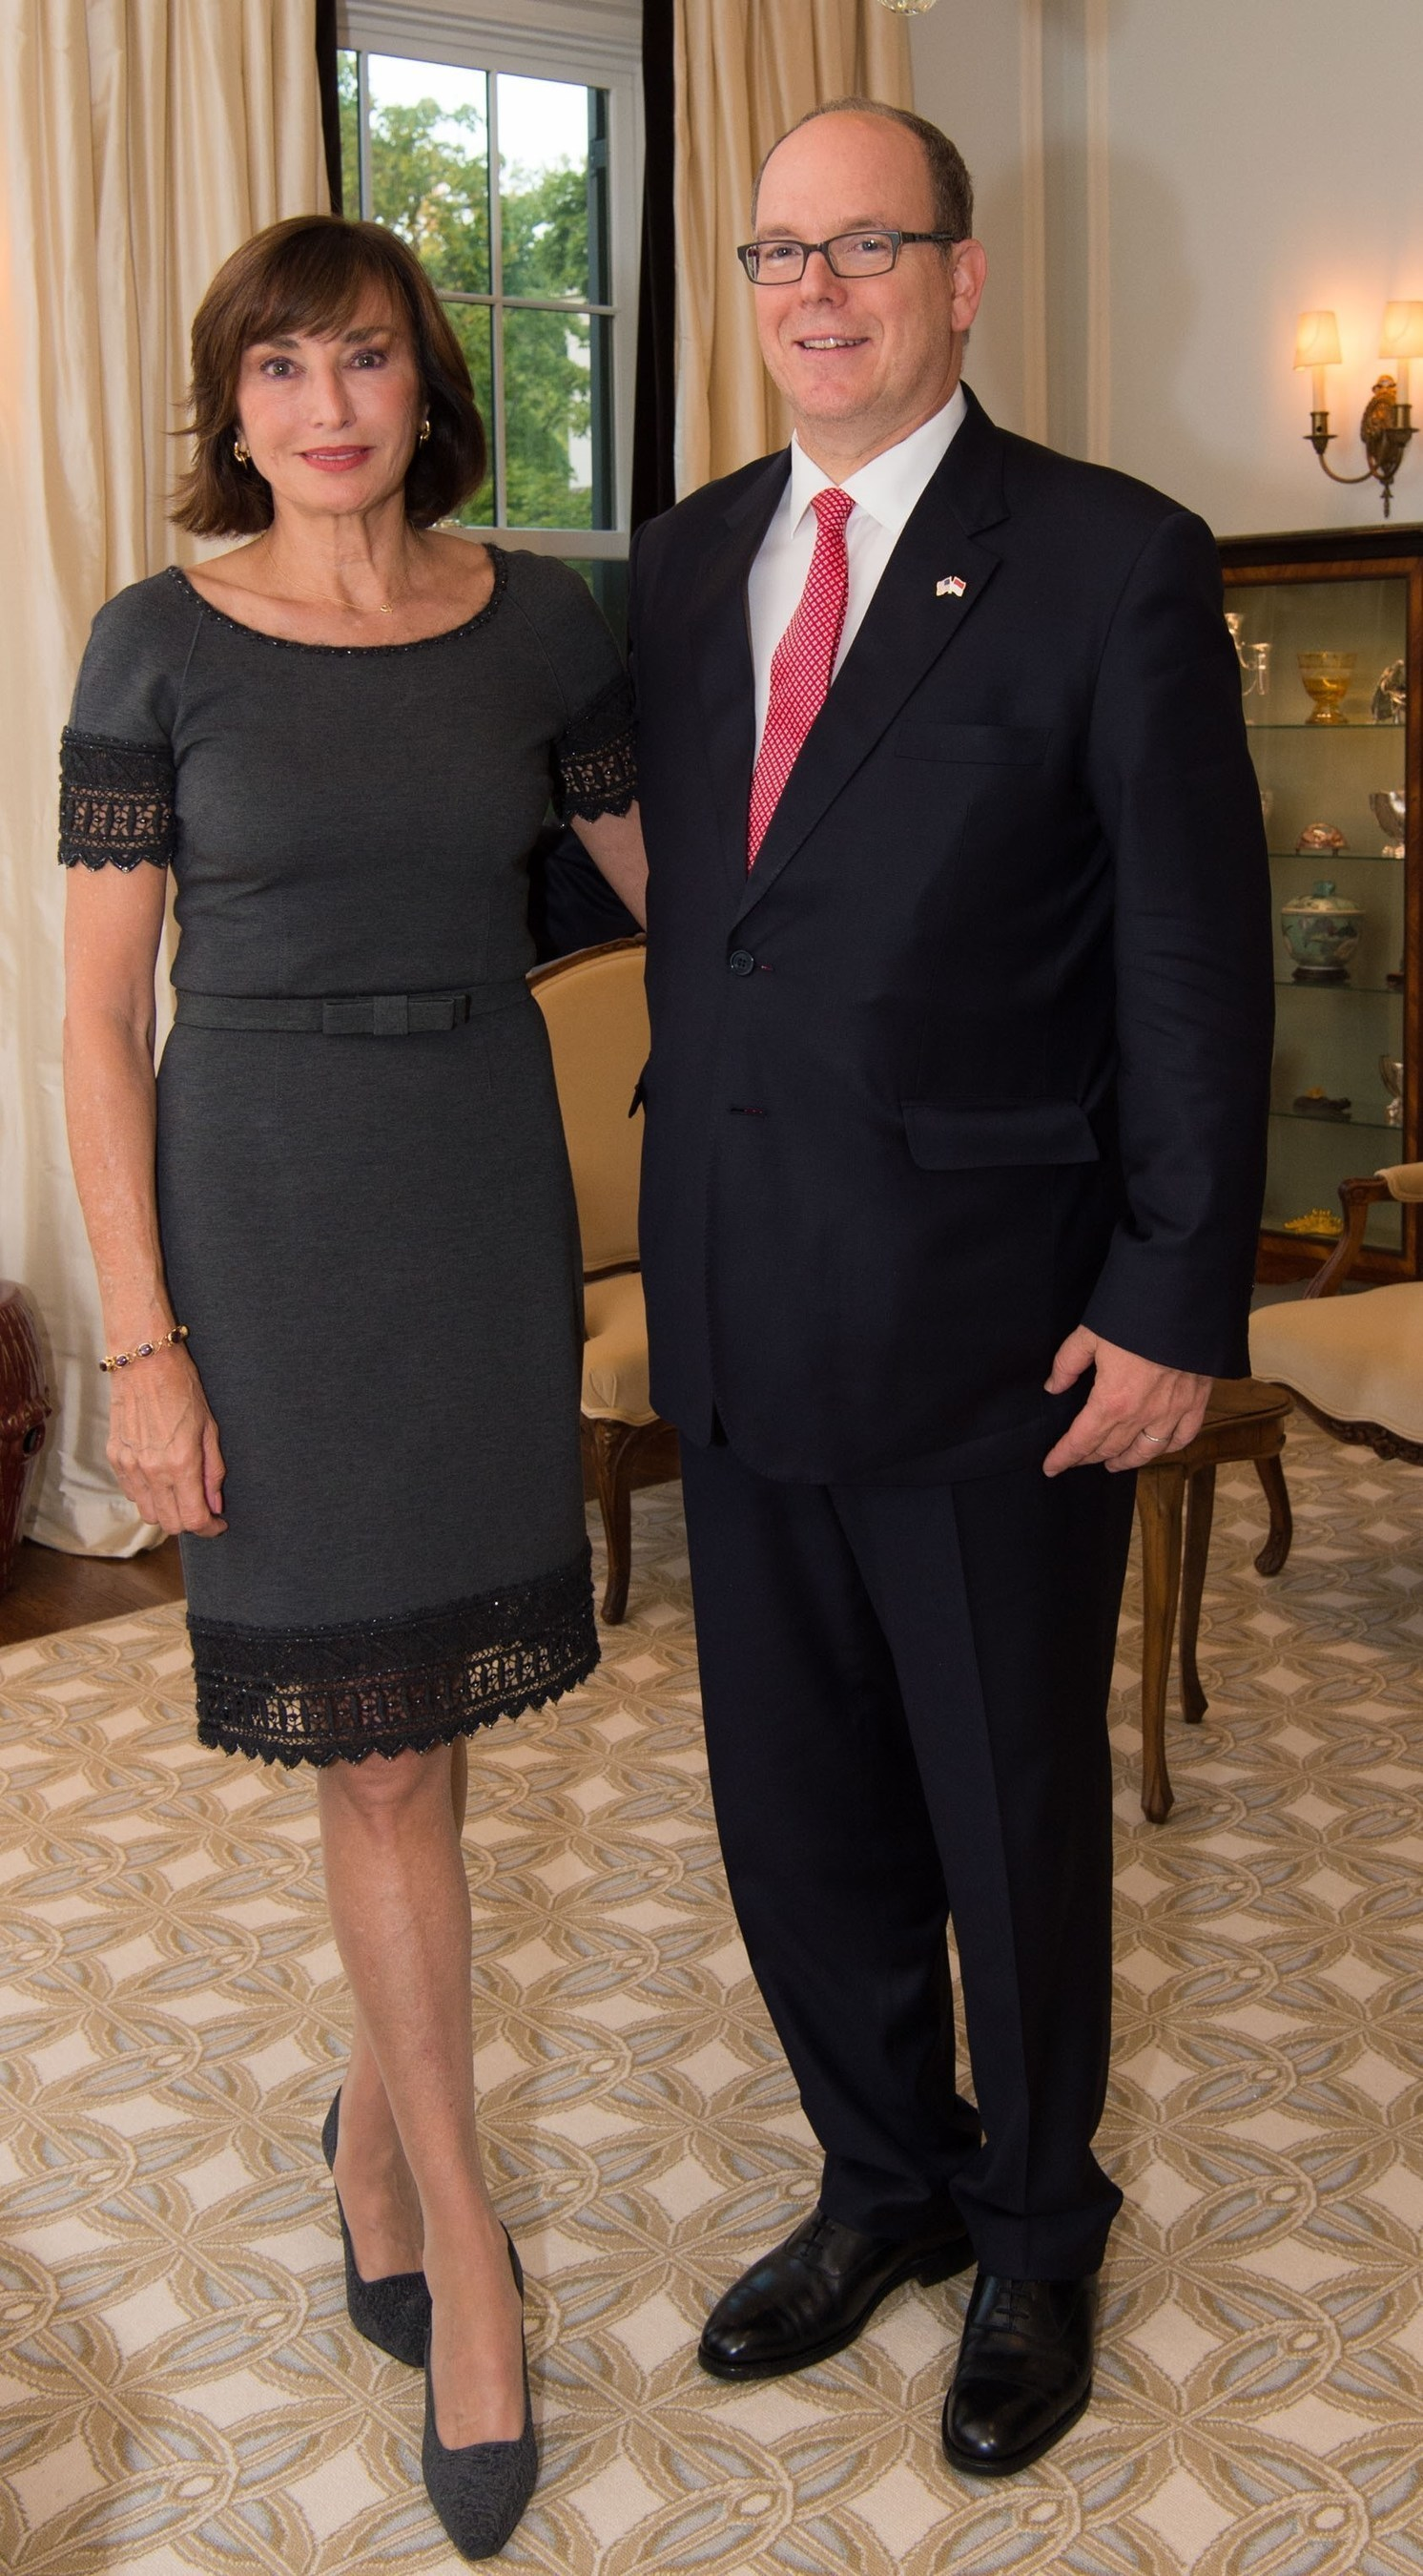 Celebrating the 10th anniversary of the opening of the Principality of Monaco's embassy in Washington, D.C., His Serene Highness Prince Albert II of Monaco with Monaco's Ambassador to the United States, Her Excellency Maguy Maccario Doyle on 22 September, 2016. (c) Palais Princier/G. Luci